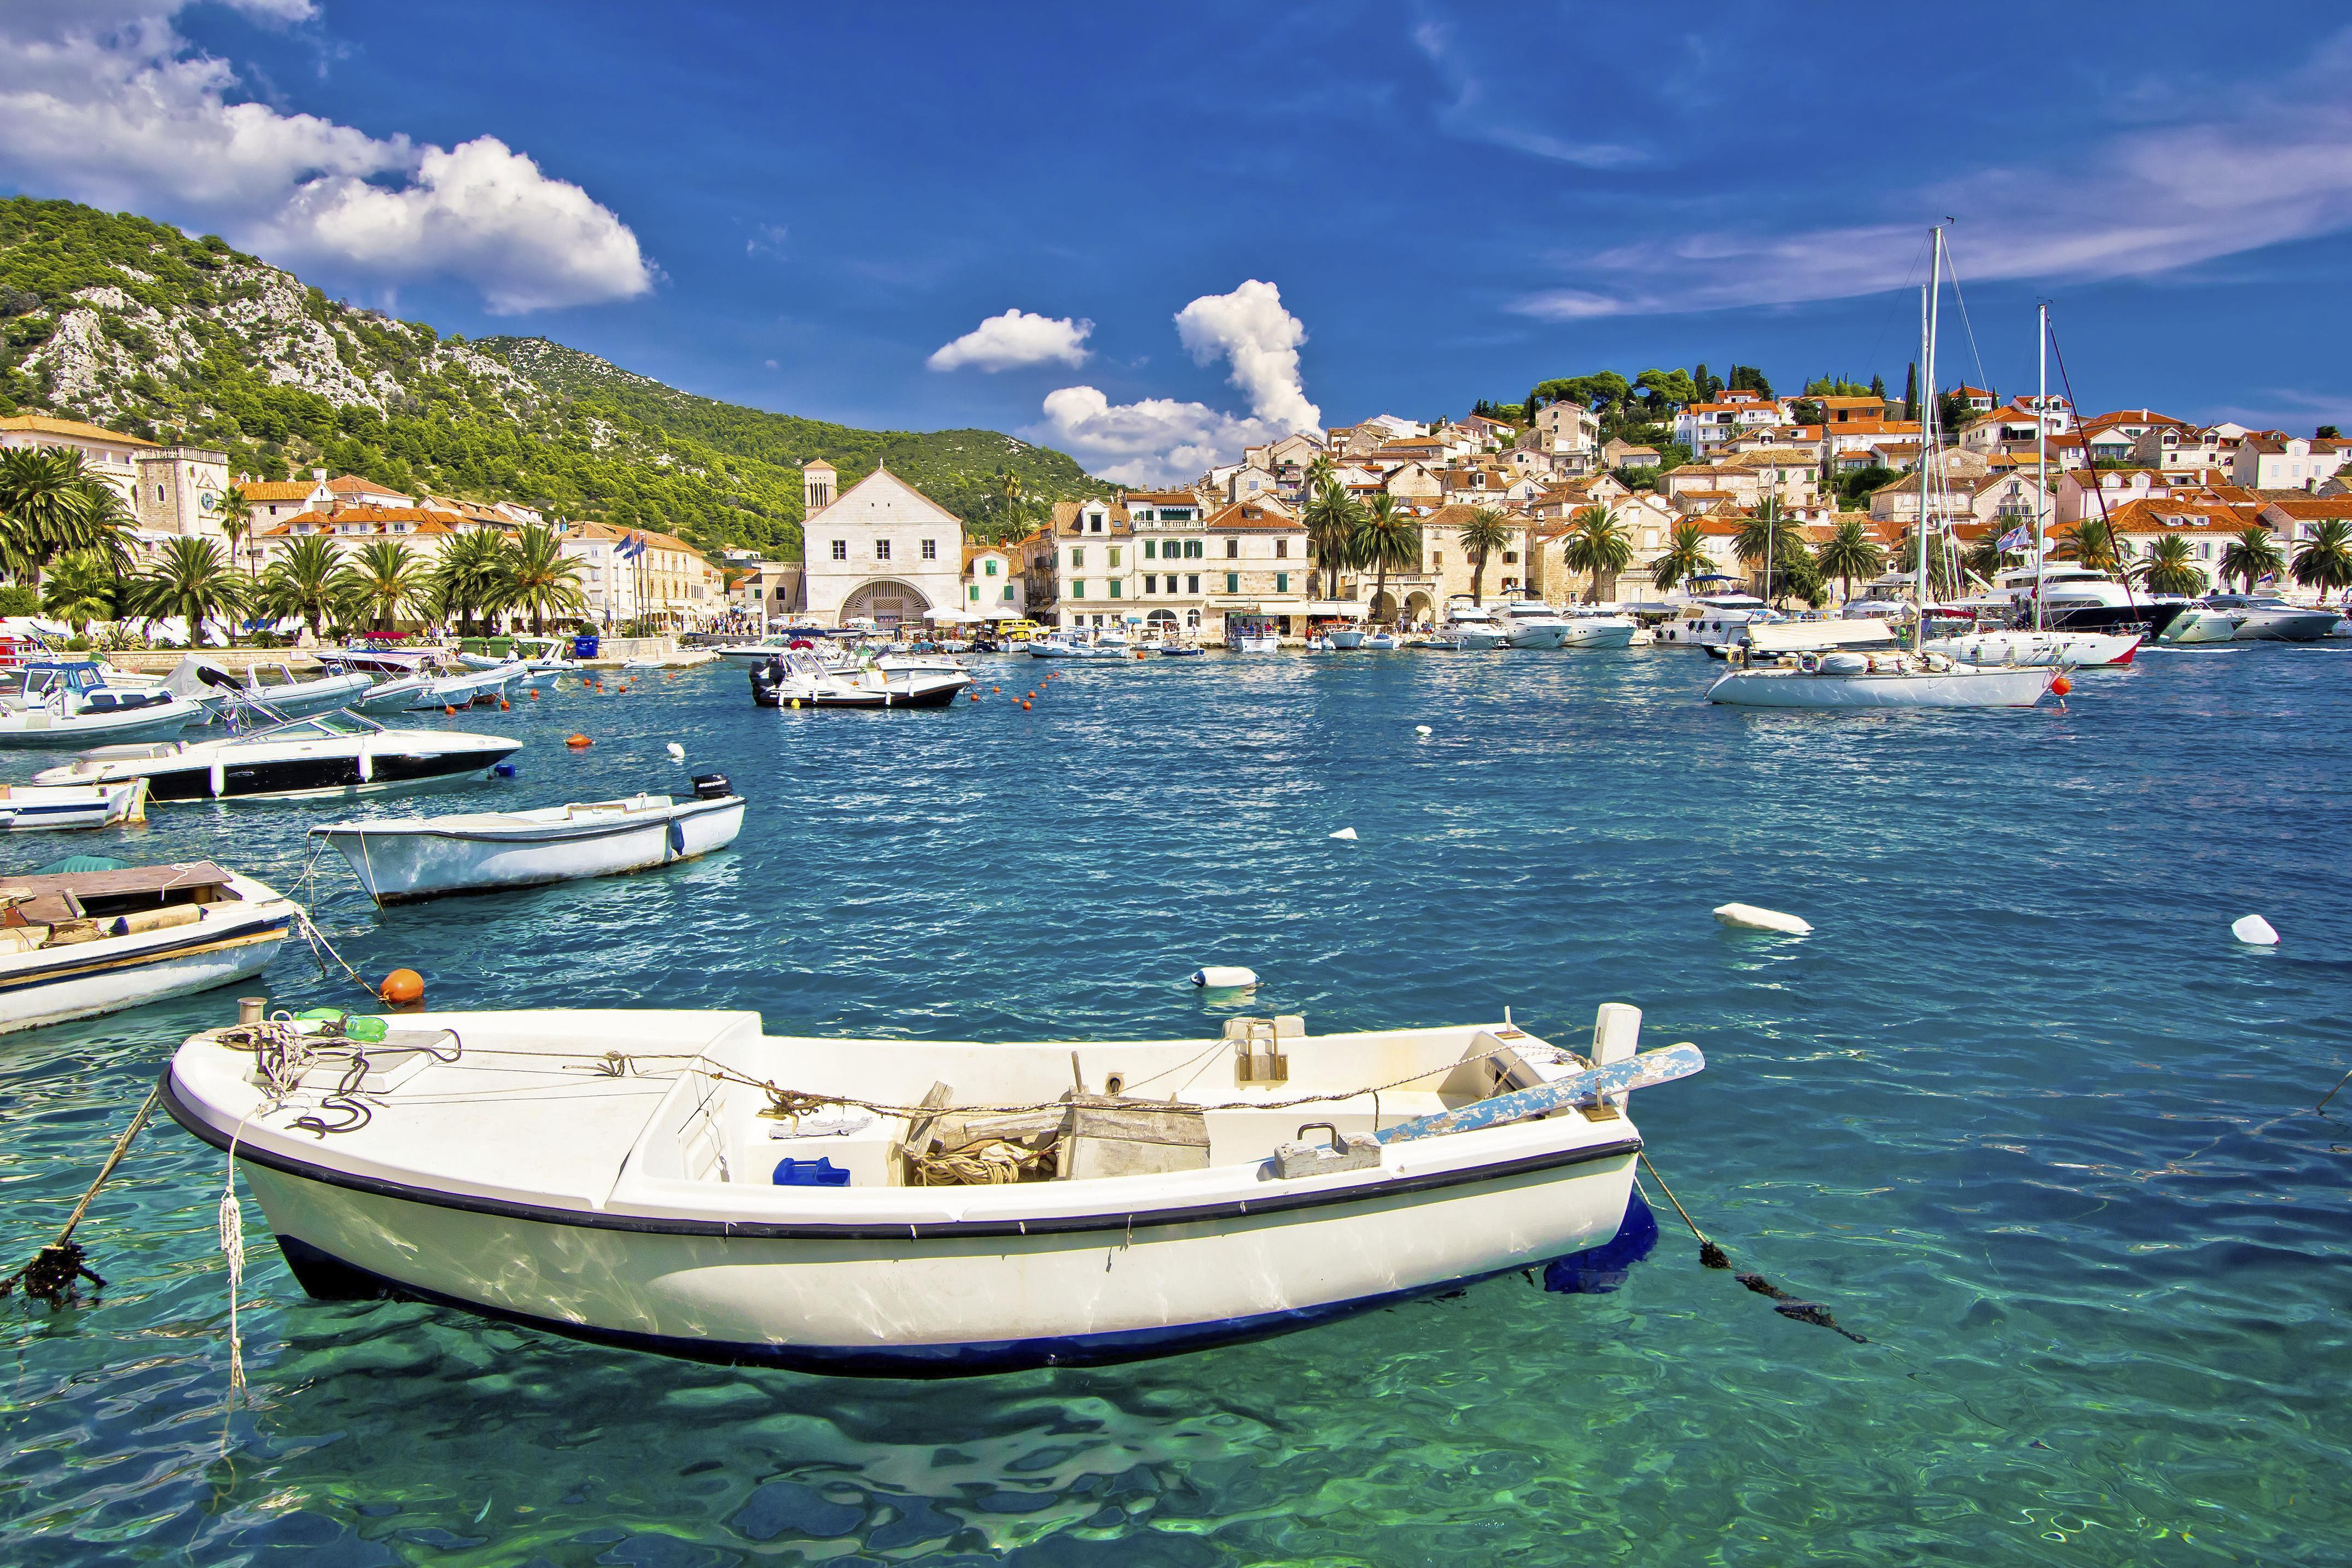 How to Spend 1 Day in Hvar